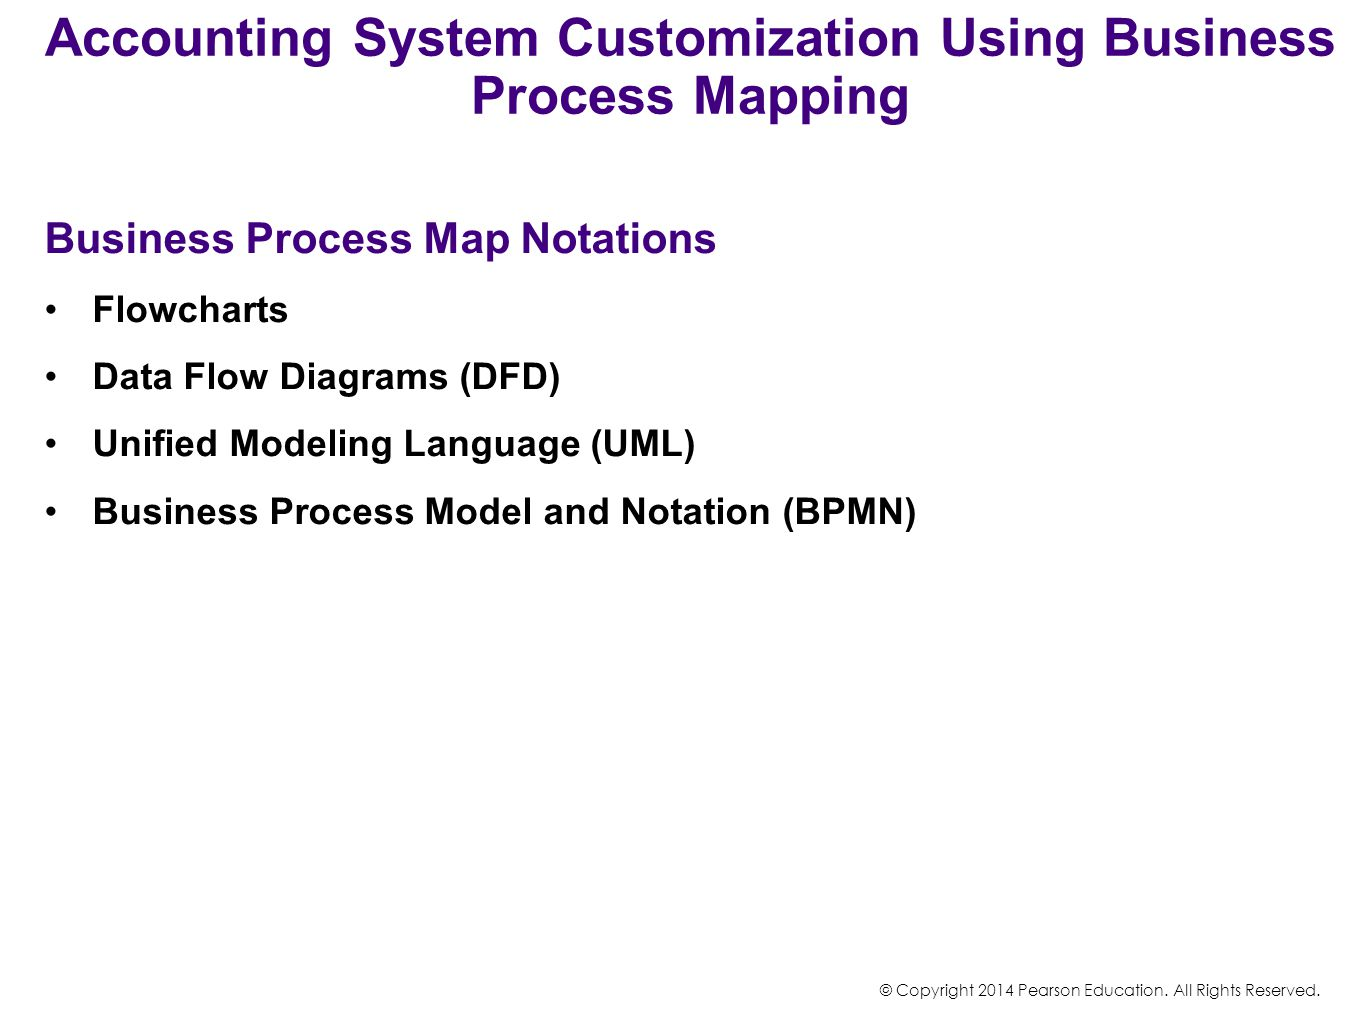 Accounting Systems Business Processes Chapter 4 Ppt Video Online